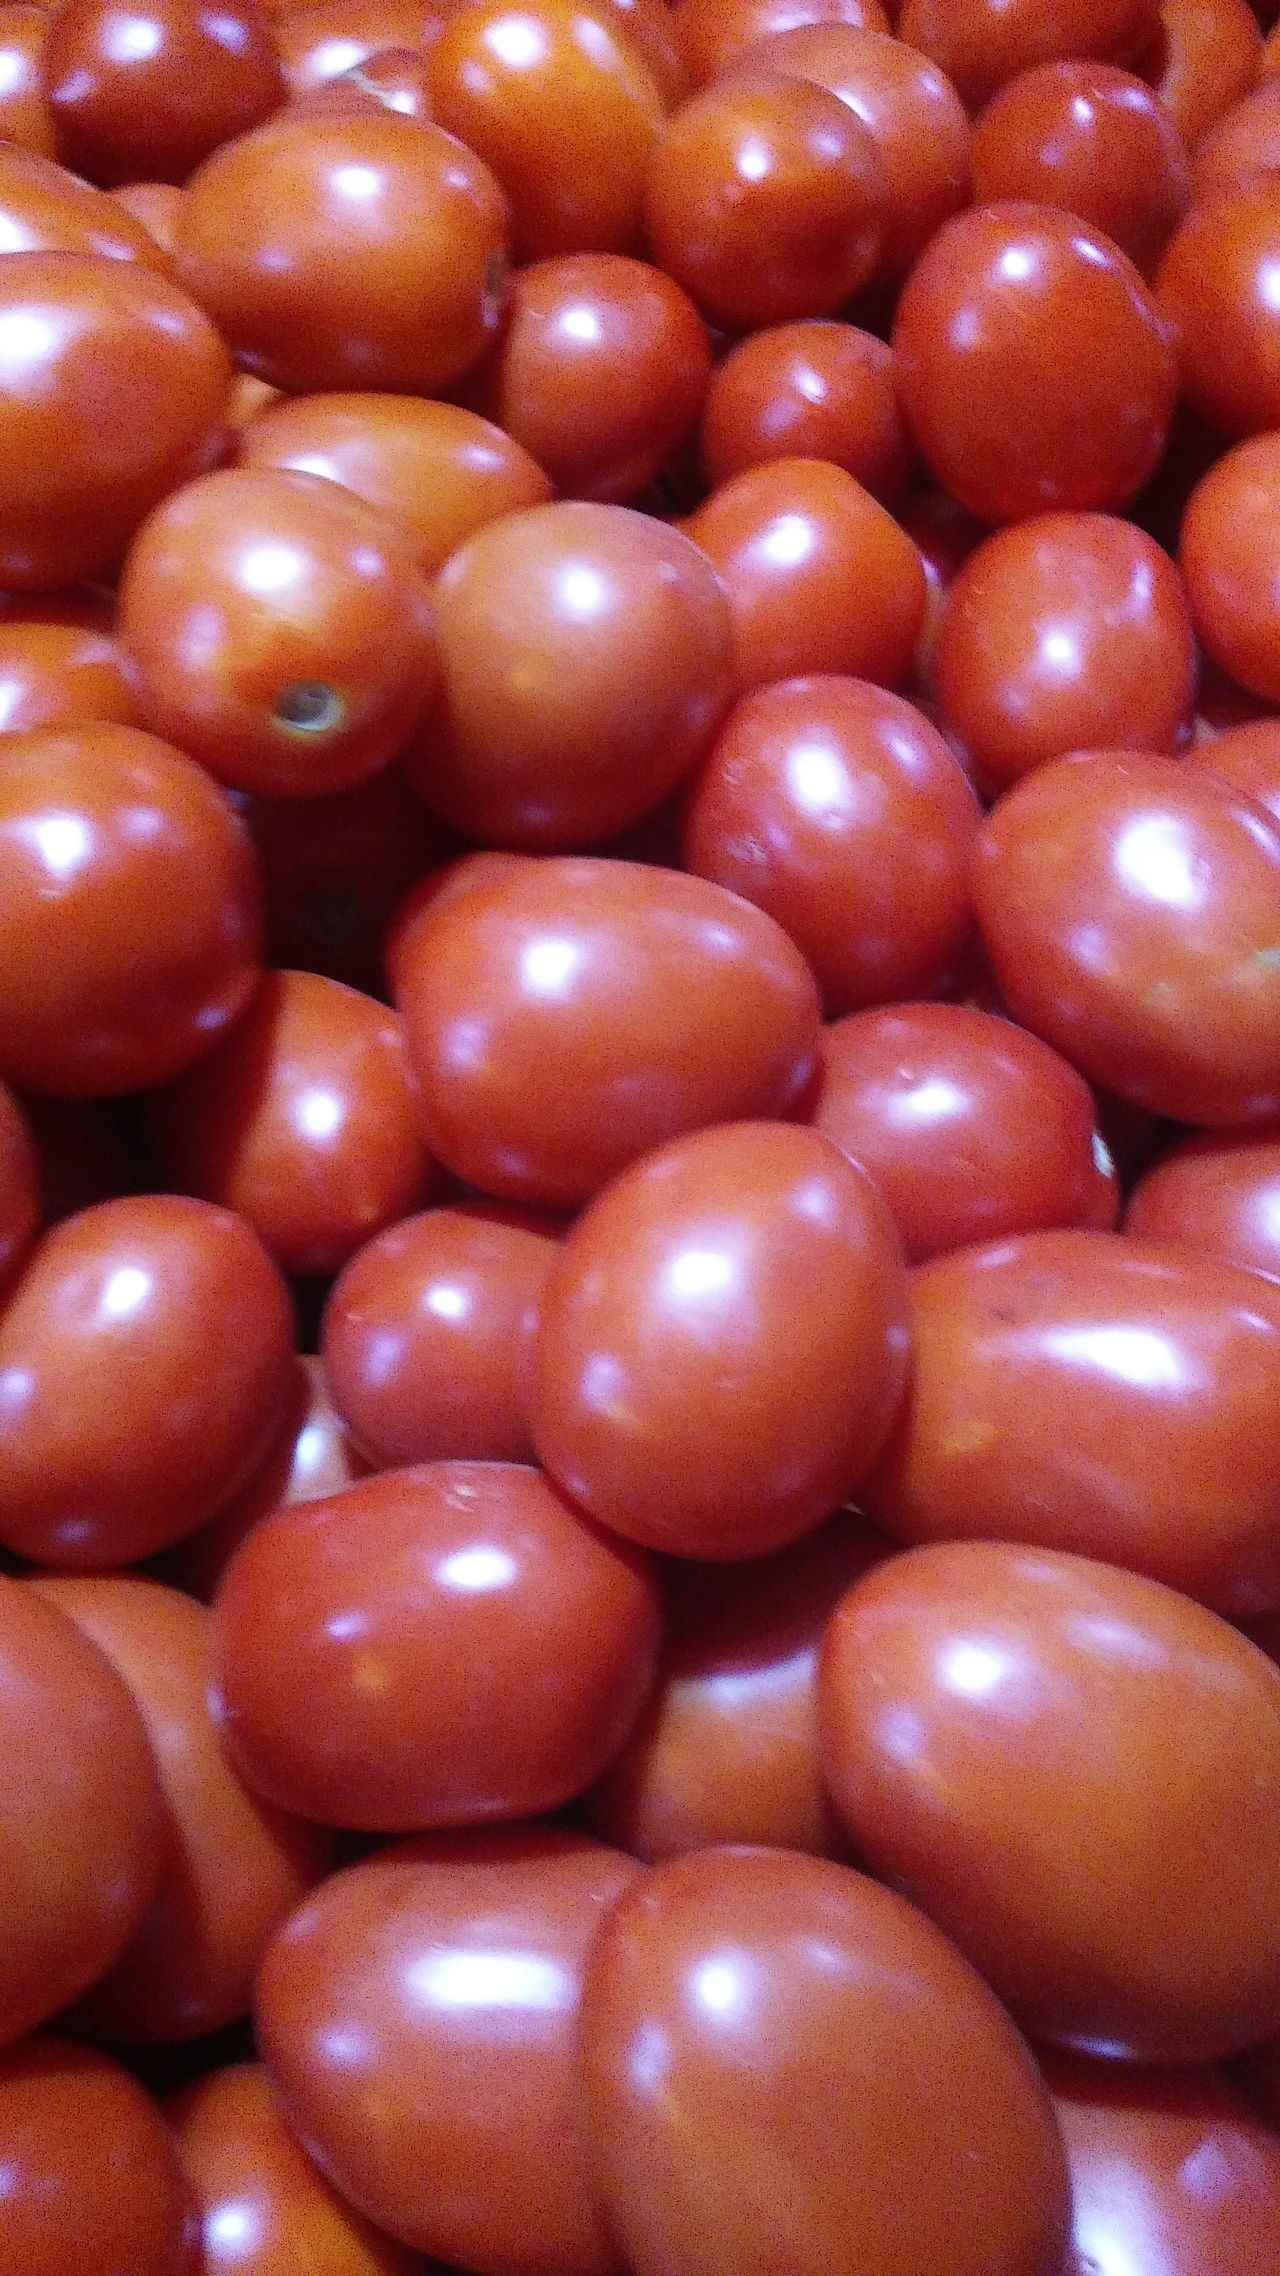 Soup Tomatoes Tomatoes Red And Juicy Tomatoes Large Group Of Objects Day Outdoors Close-up No People High Angle View Market Stall Retail  Healthy Eating Red Vegetable For Sale Food Market Freshness Red Vegetable Fruit Tomatoes Red Fruit Retail  Food And Drink Wholesale